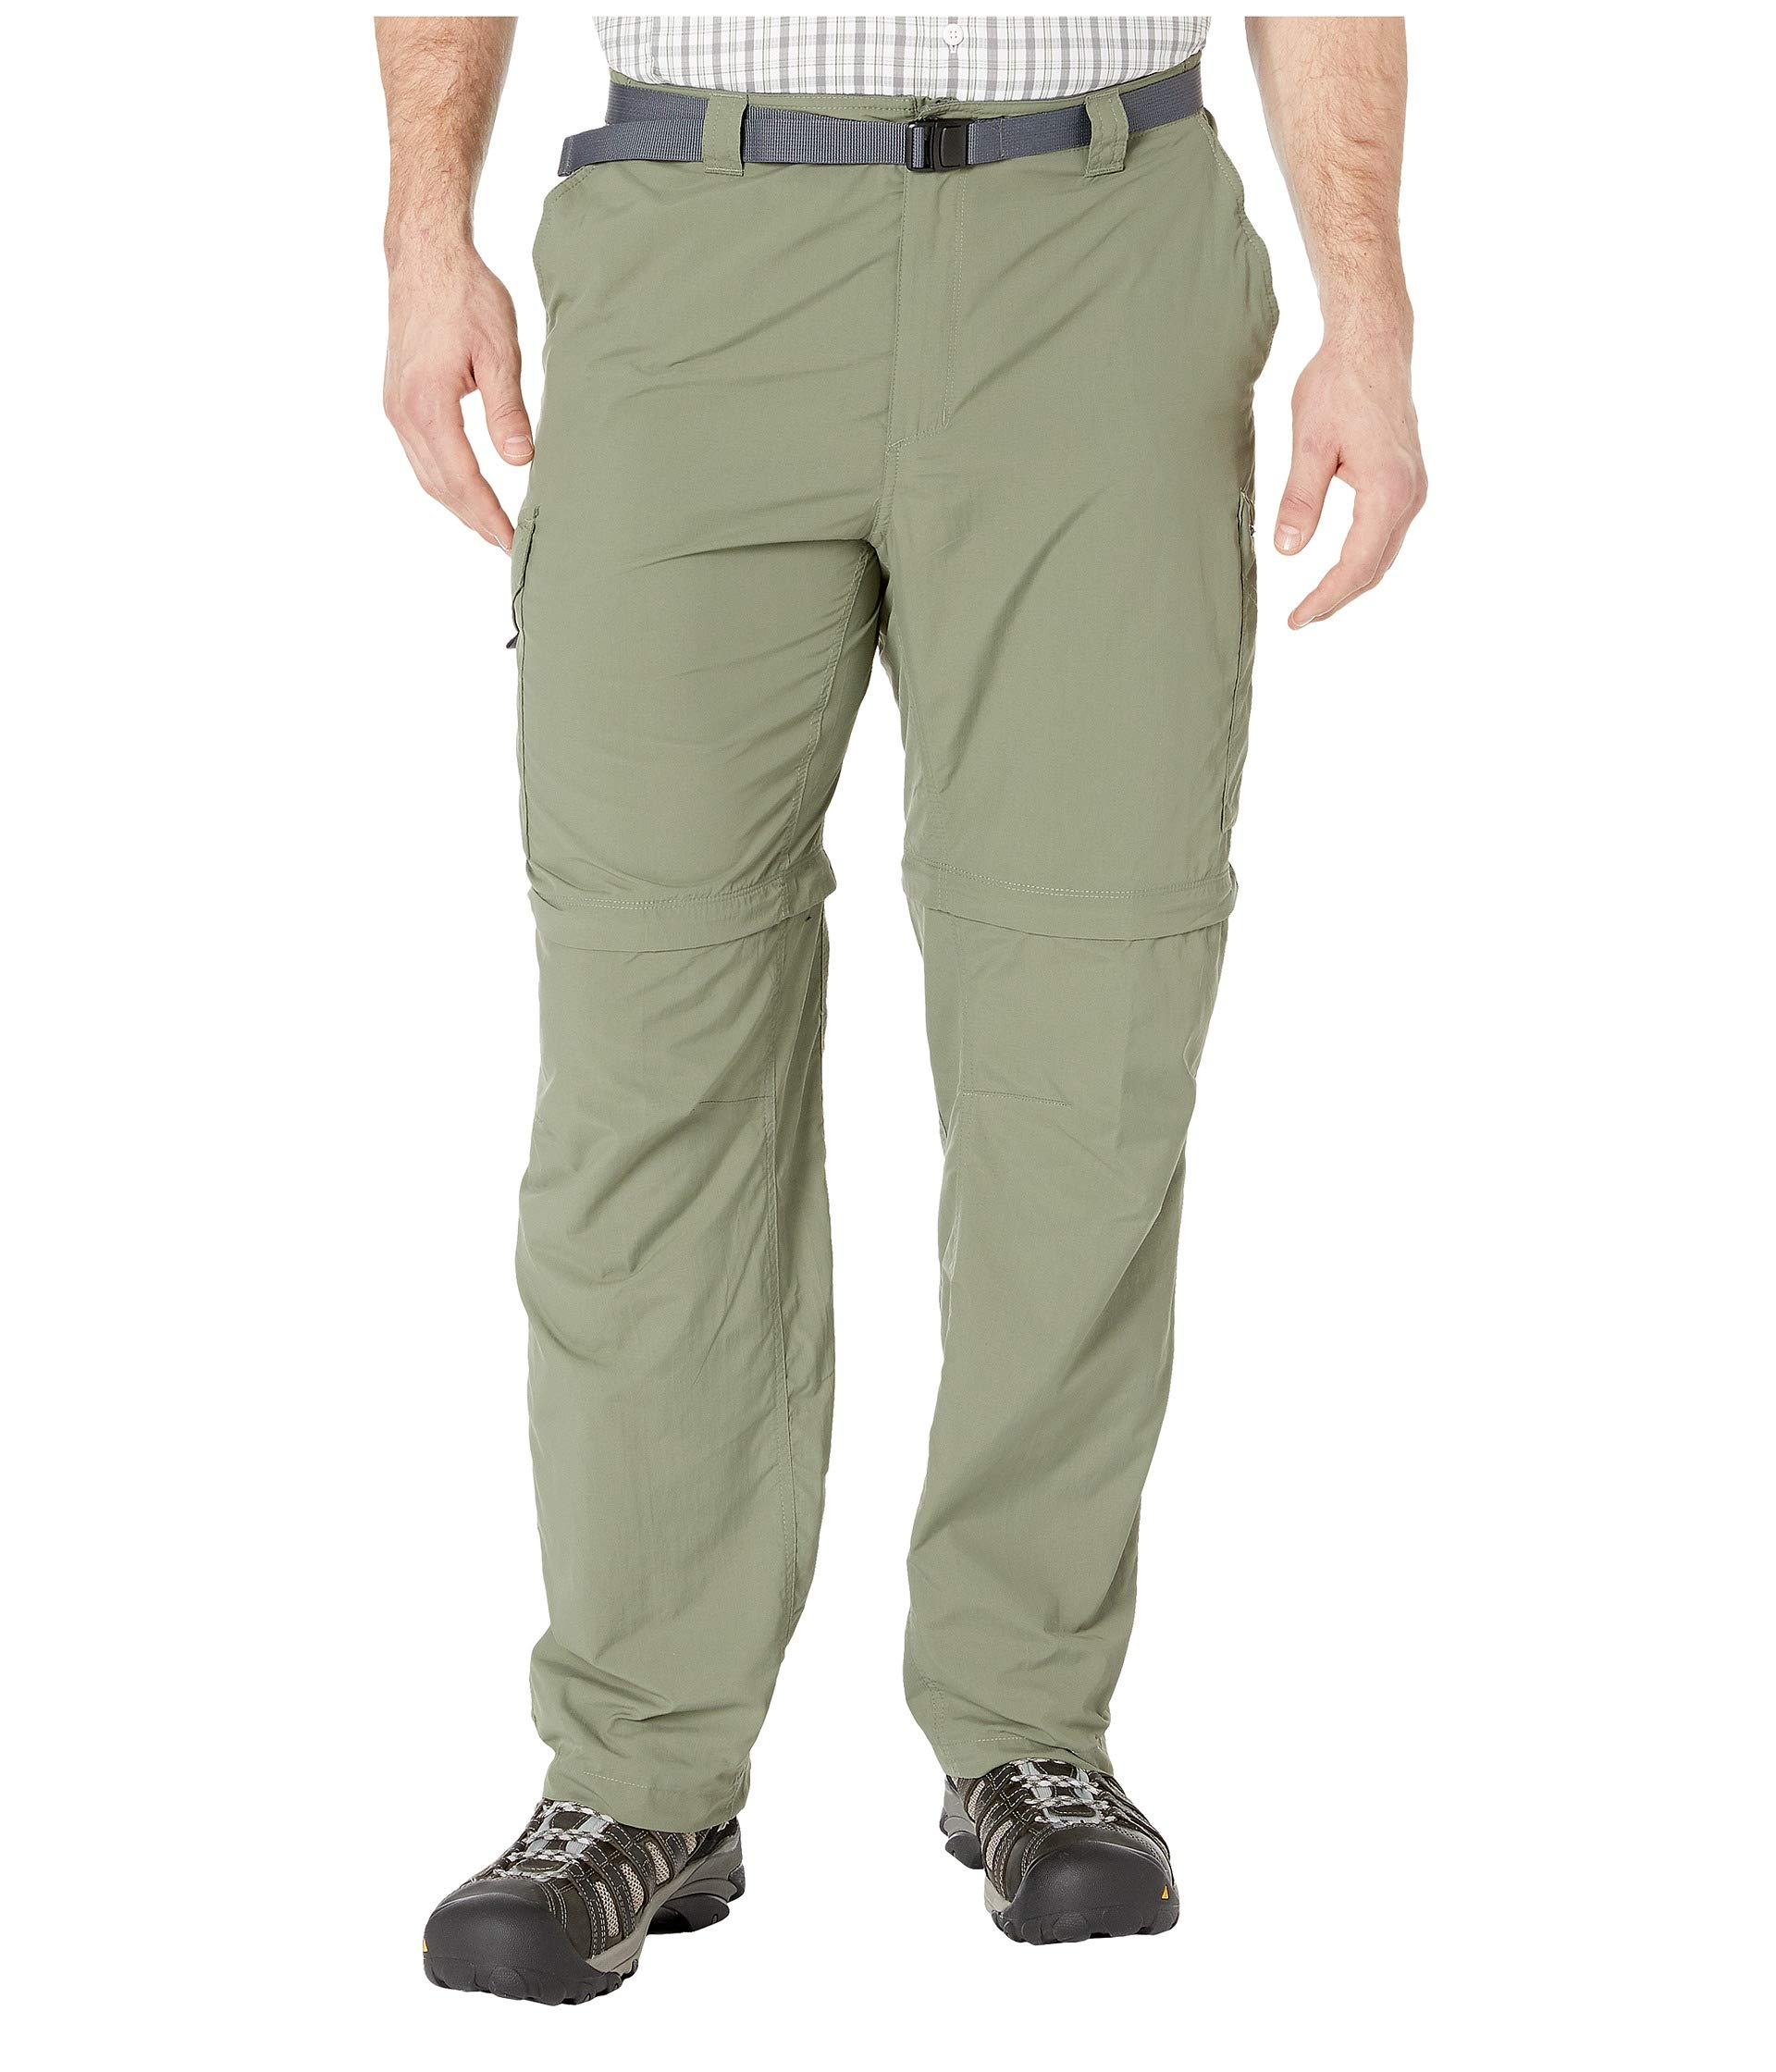 Columbia 1441675 Men's Silver Ridge Convertible Pants, Size 42x30, Cypress